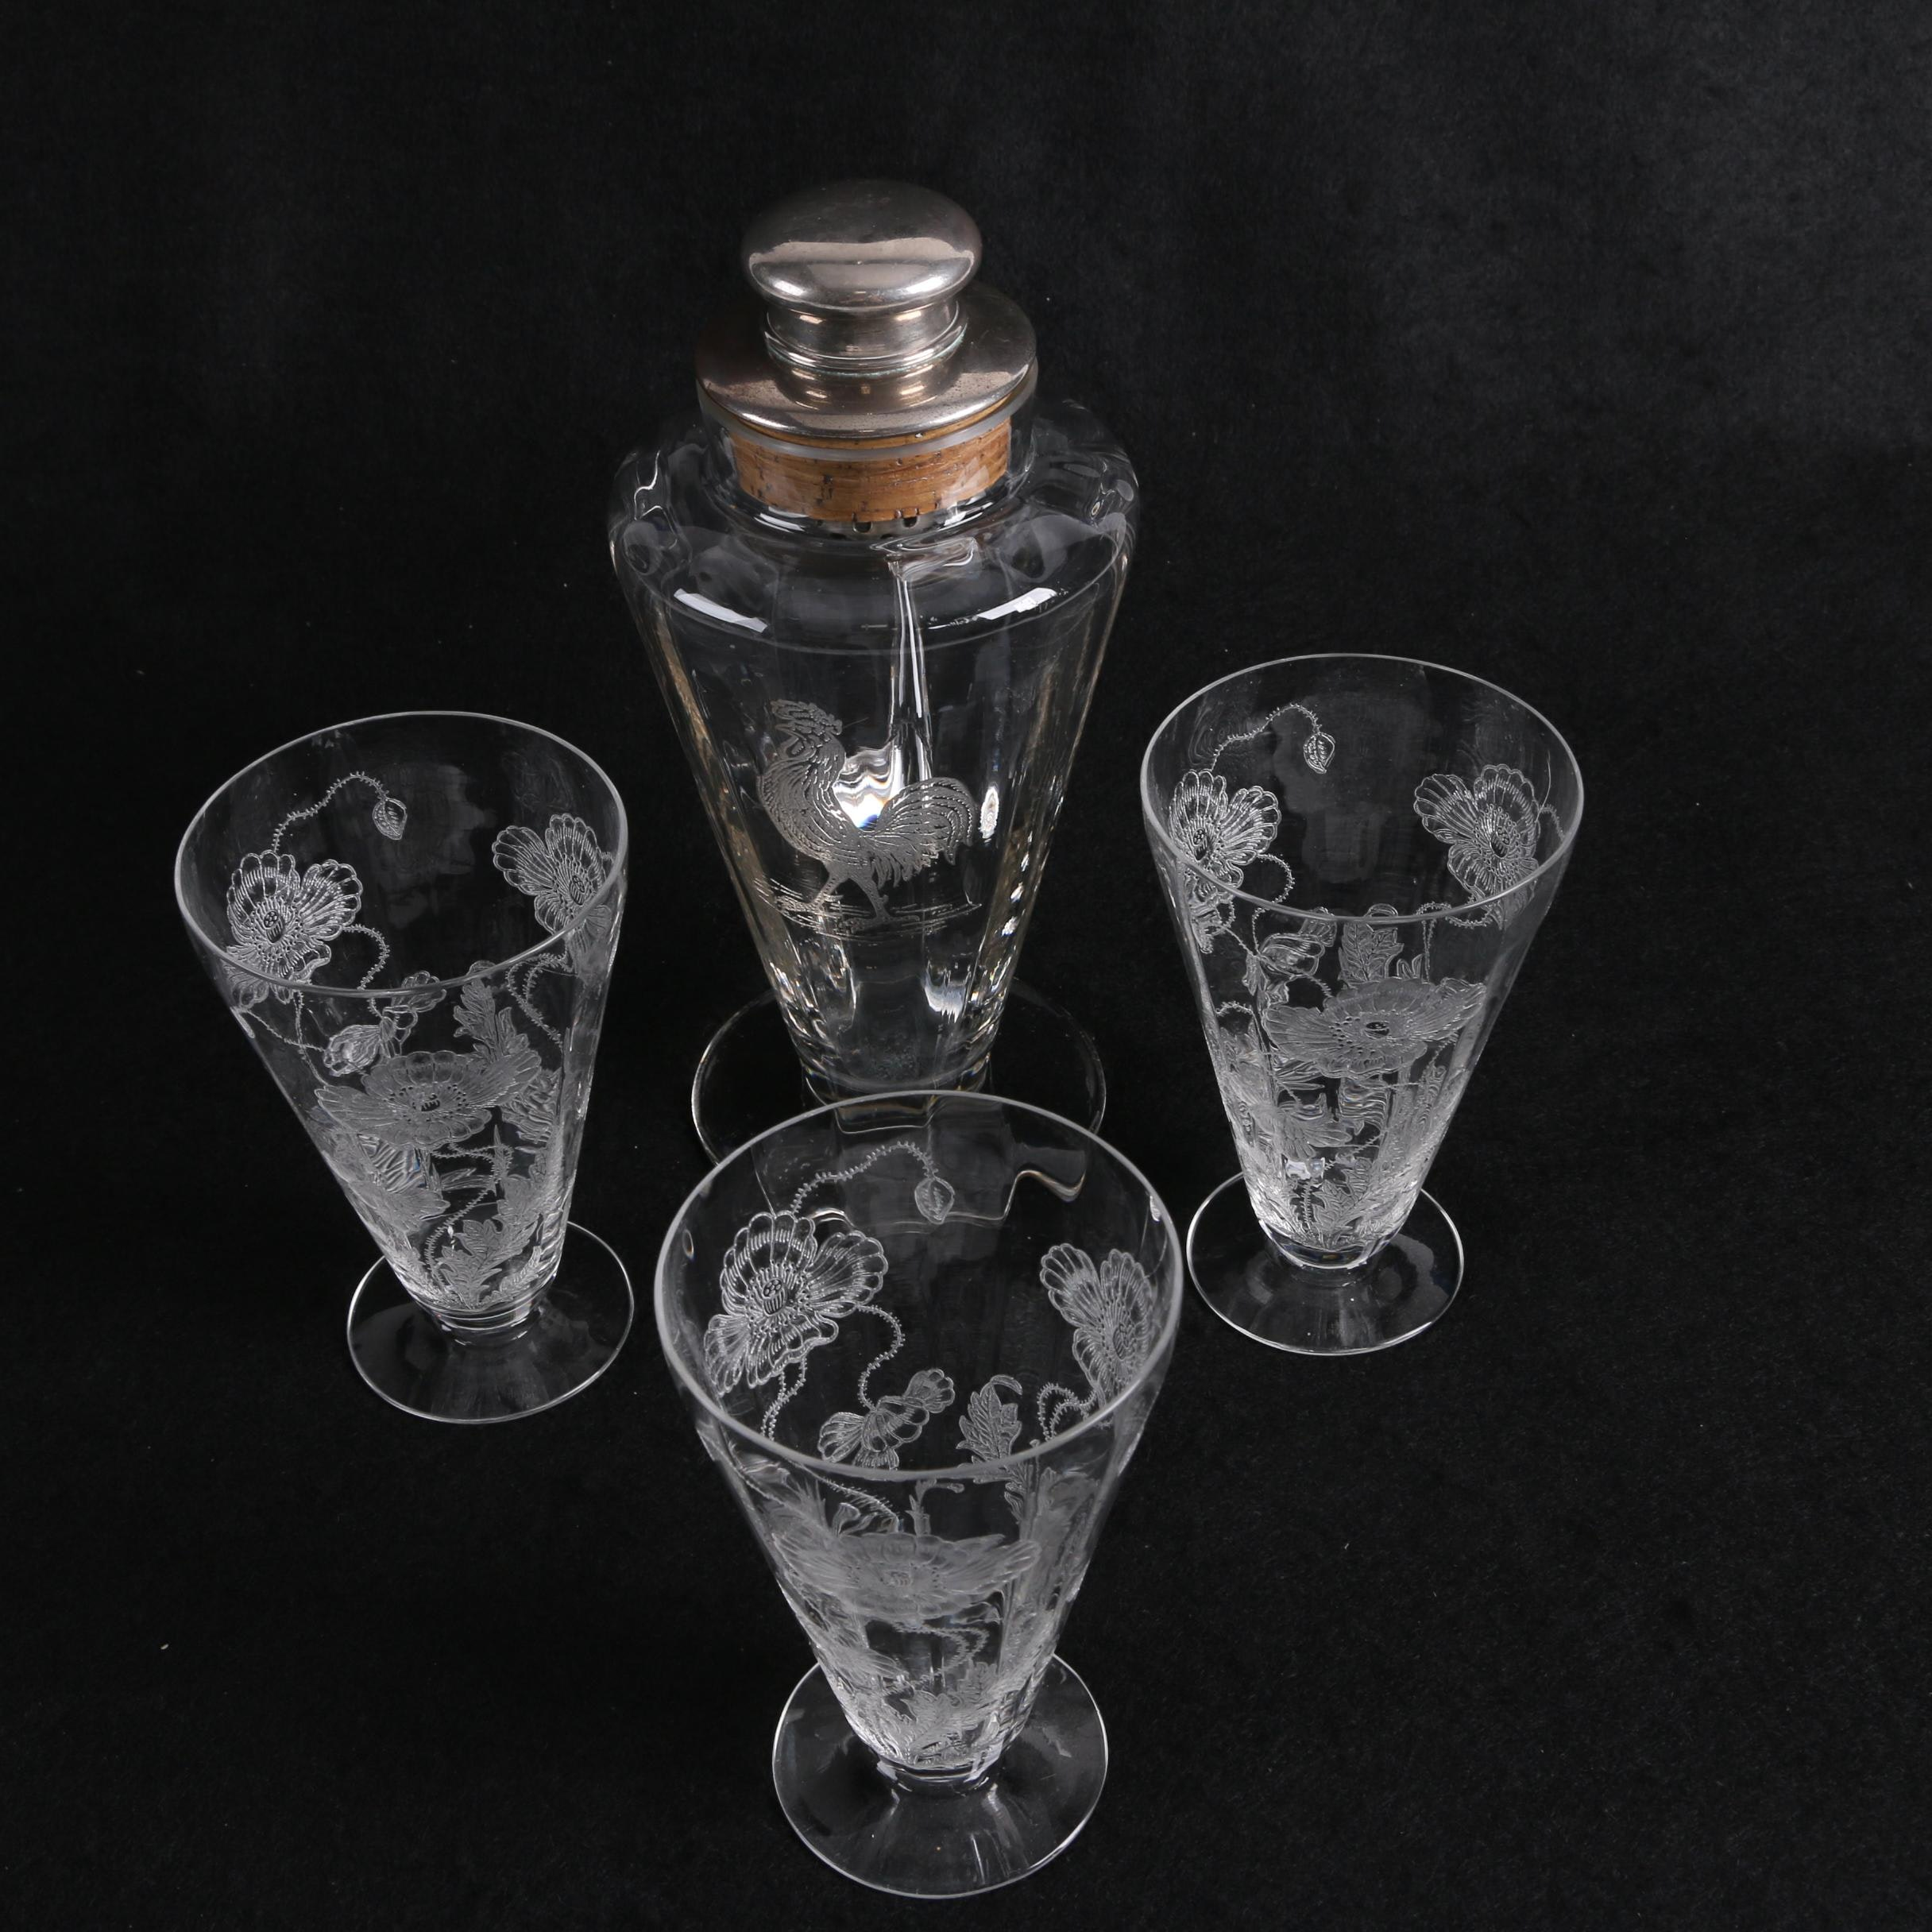 Vintage Needle Etched Rooster Motif Cocktail Shaker with Floral Juice Glasses